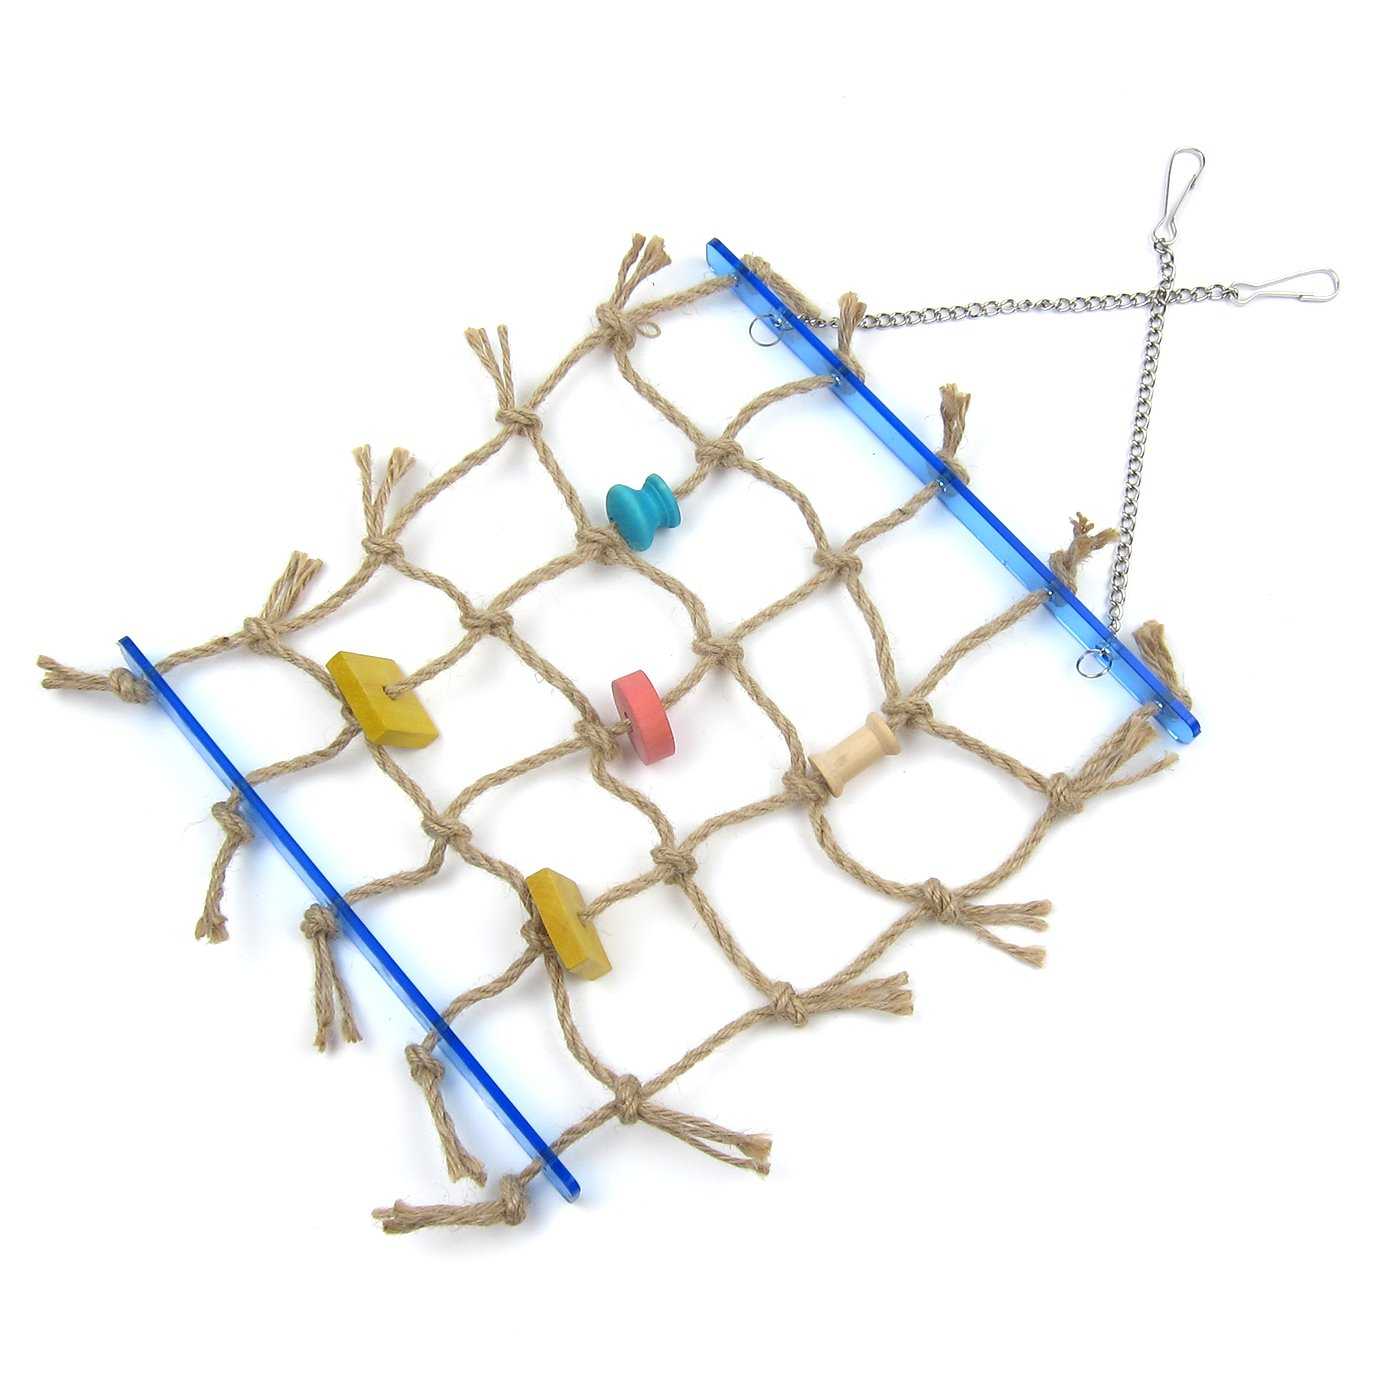 Alfie Pet by Petoga Couture - Kaelin Hanging Rope Ladder Toy for Birds by Alfie (Image #8)